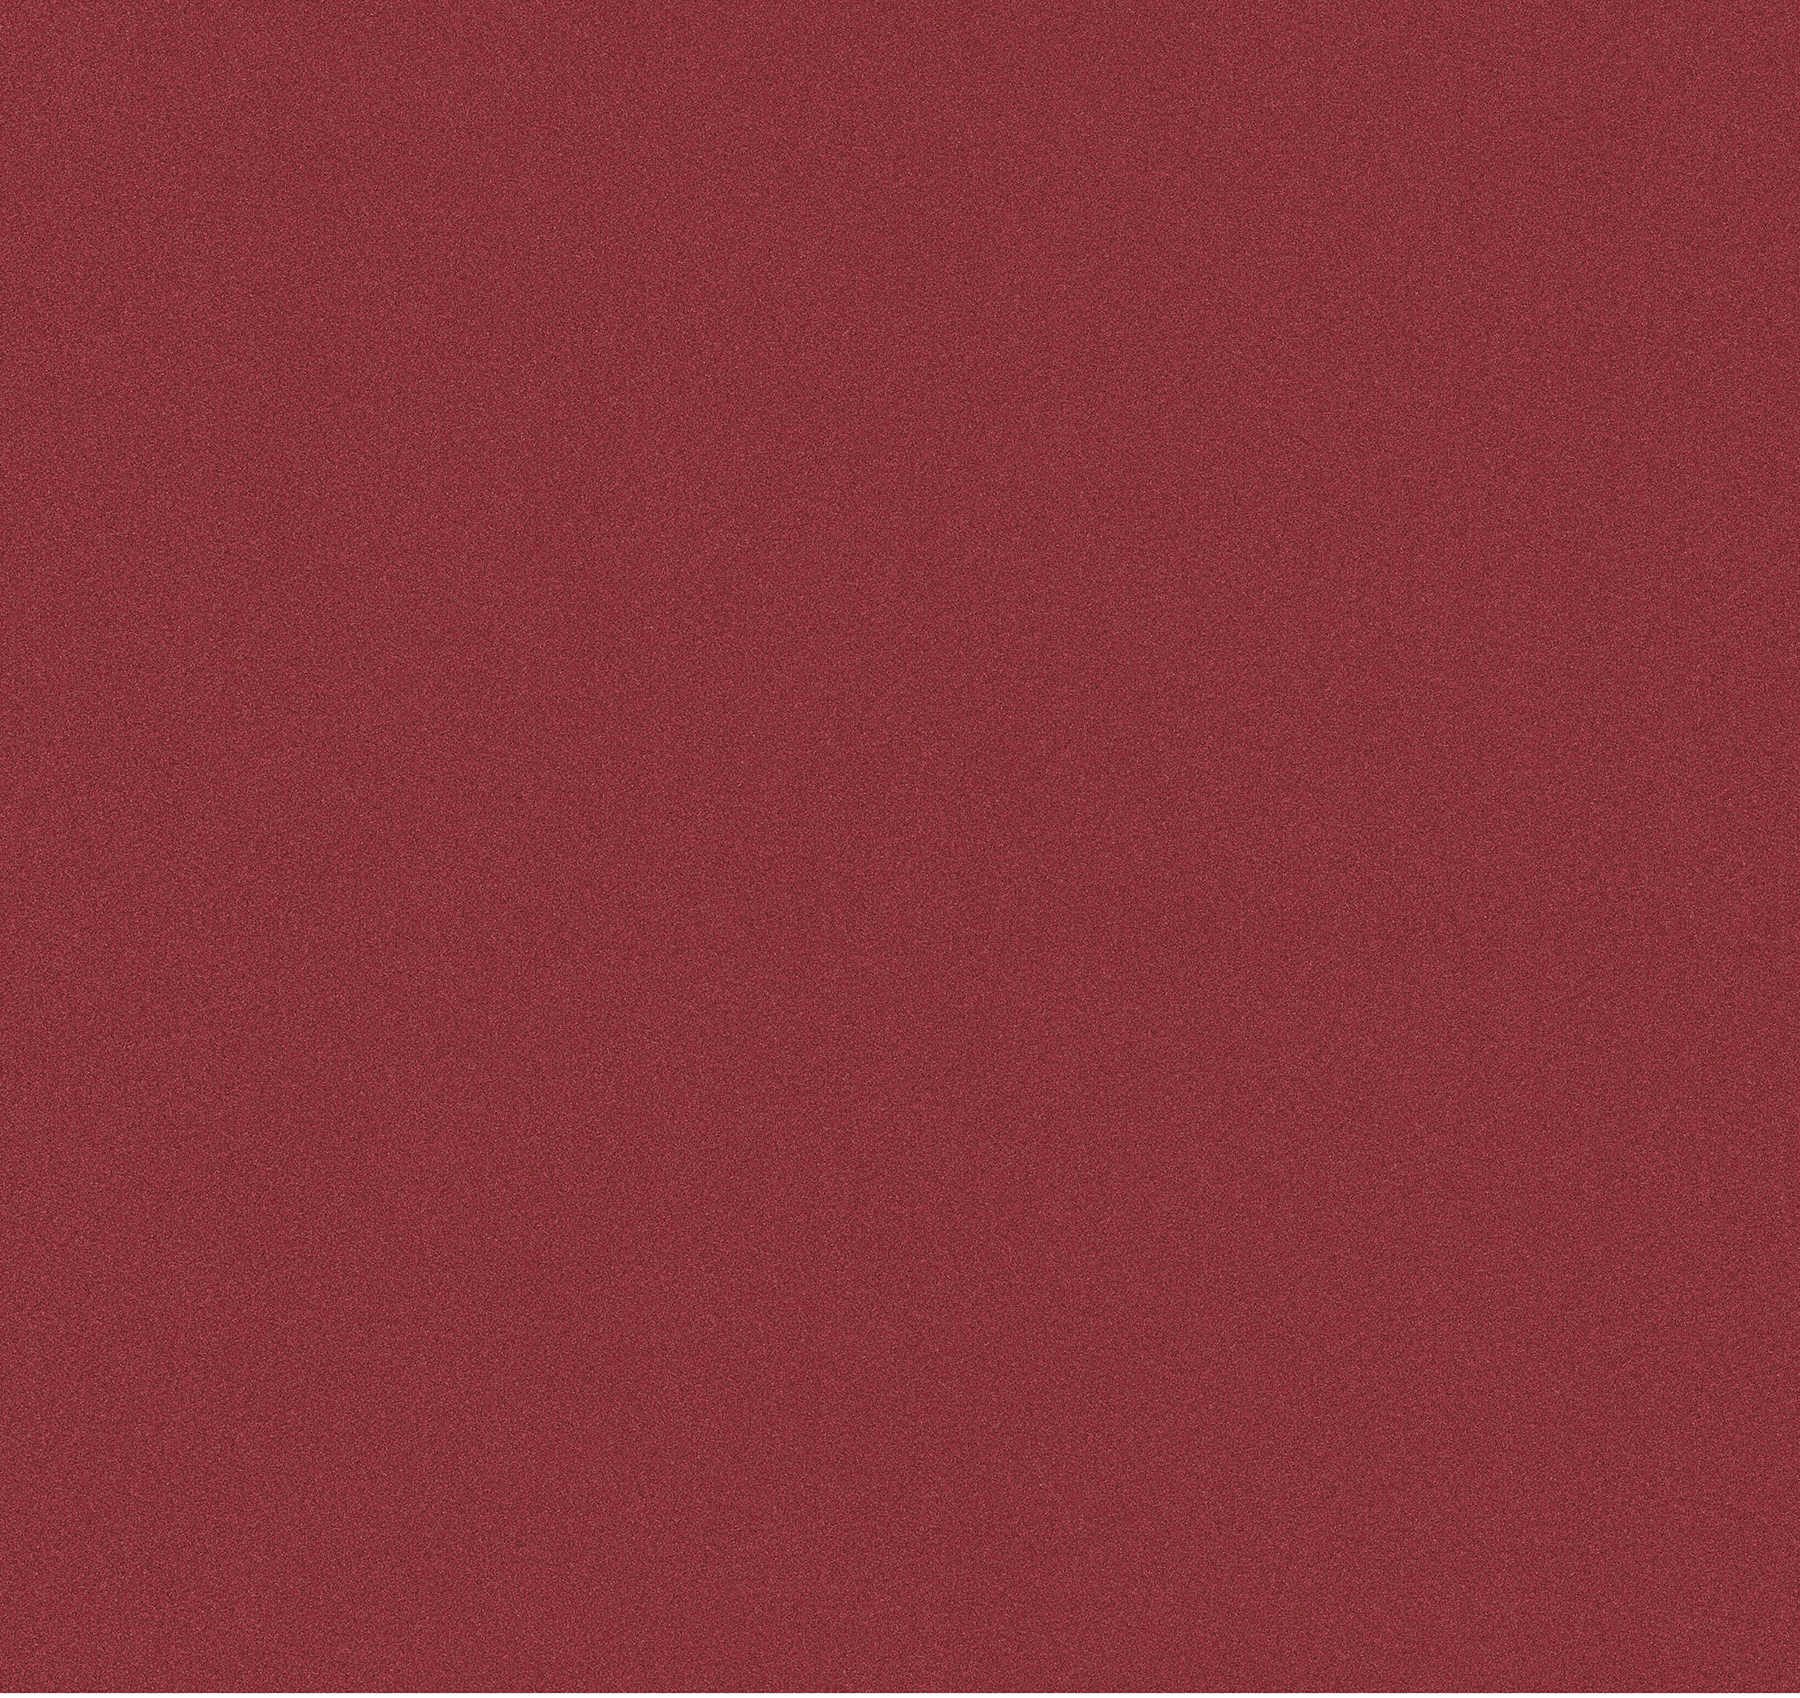 Picture of Bechet Red Speckled Texture Wallpaper